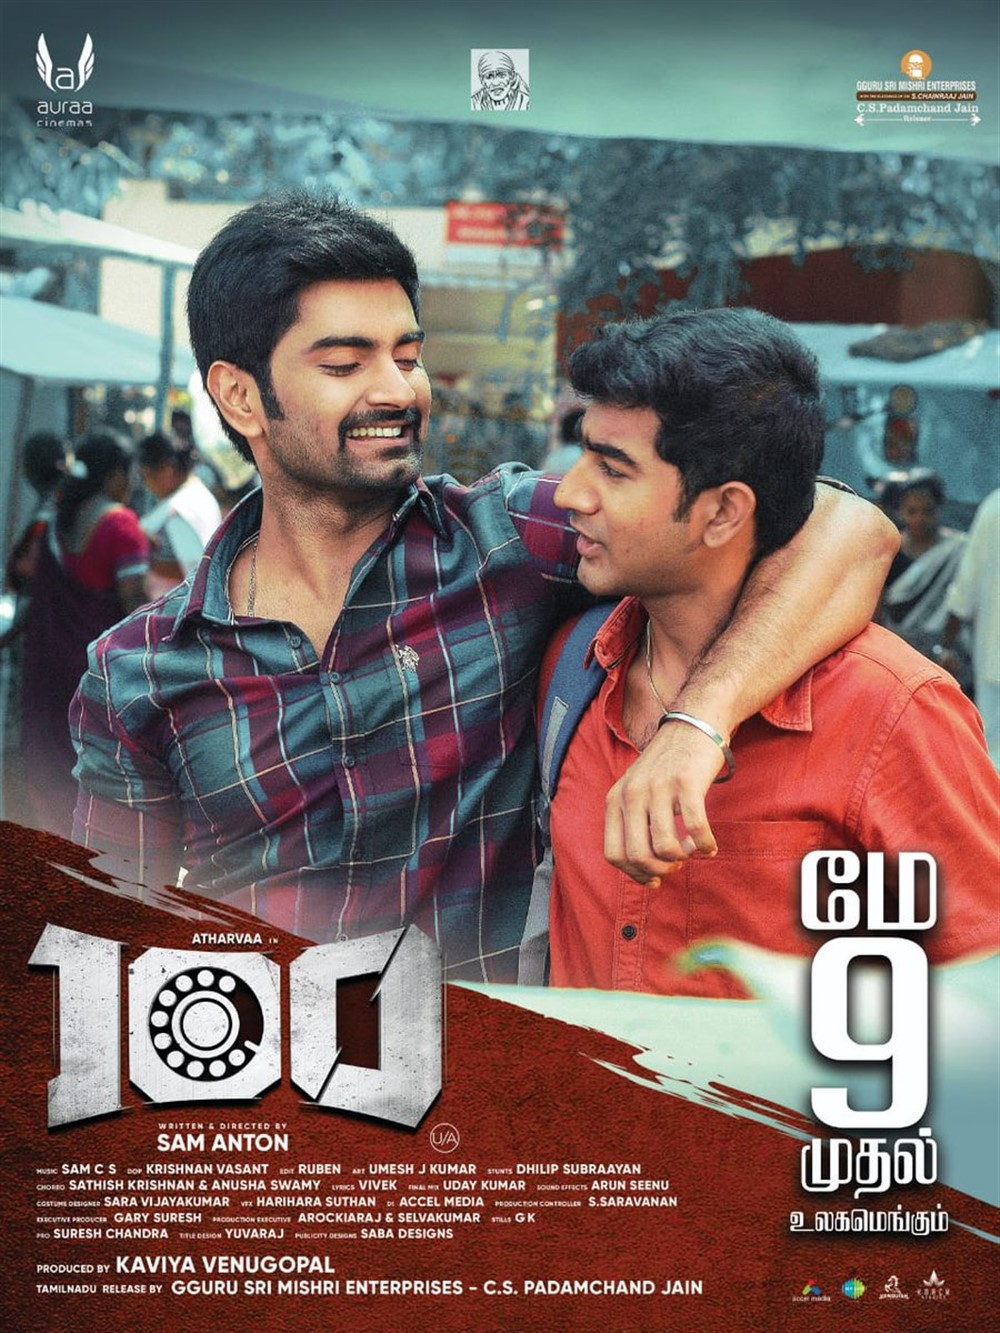 100 (2019) Hindi Dubbed AMZN UNCUT 1080p WEB-DL x264 3.1GB Download